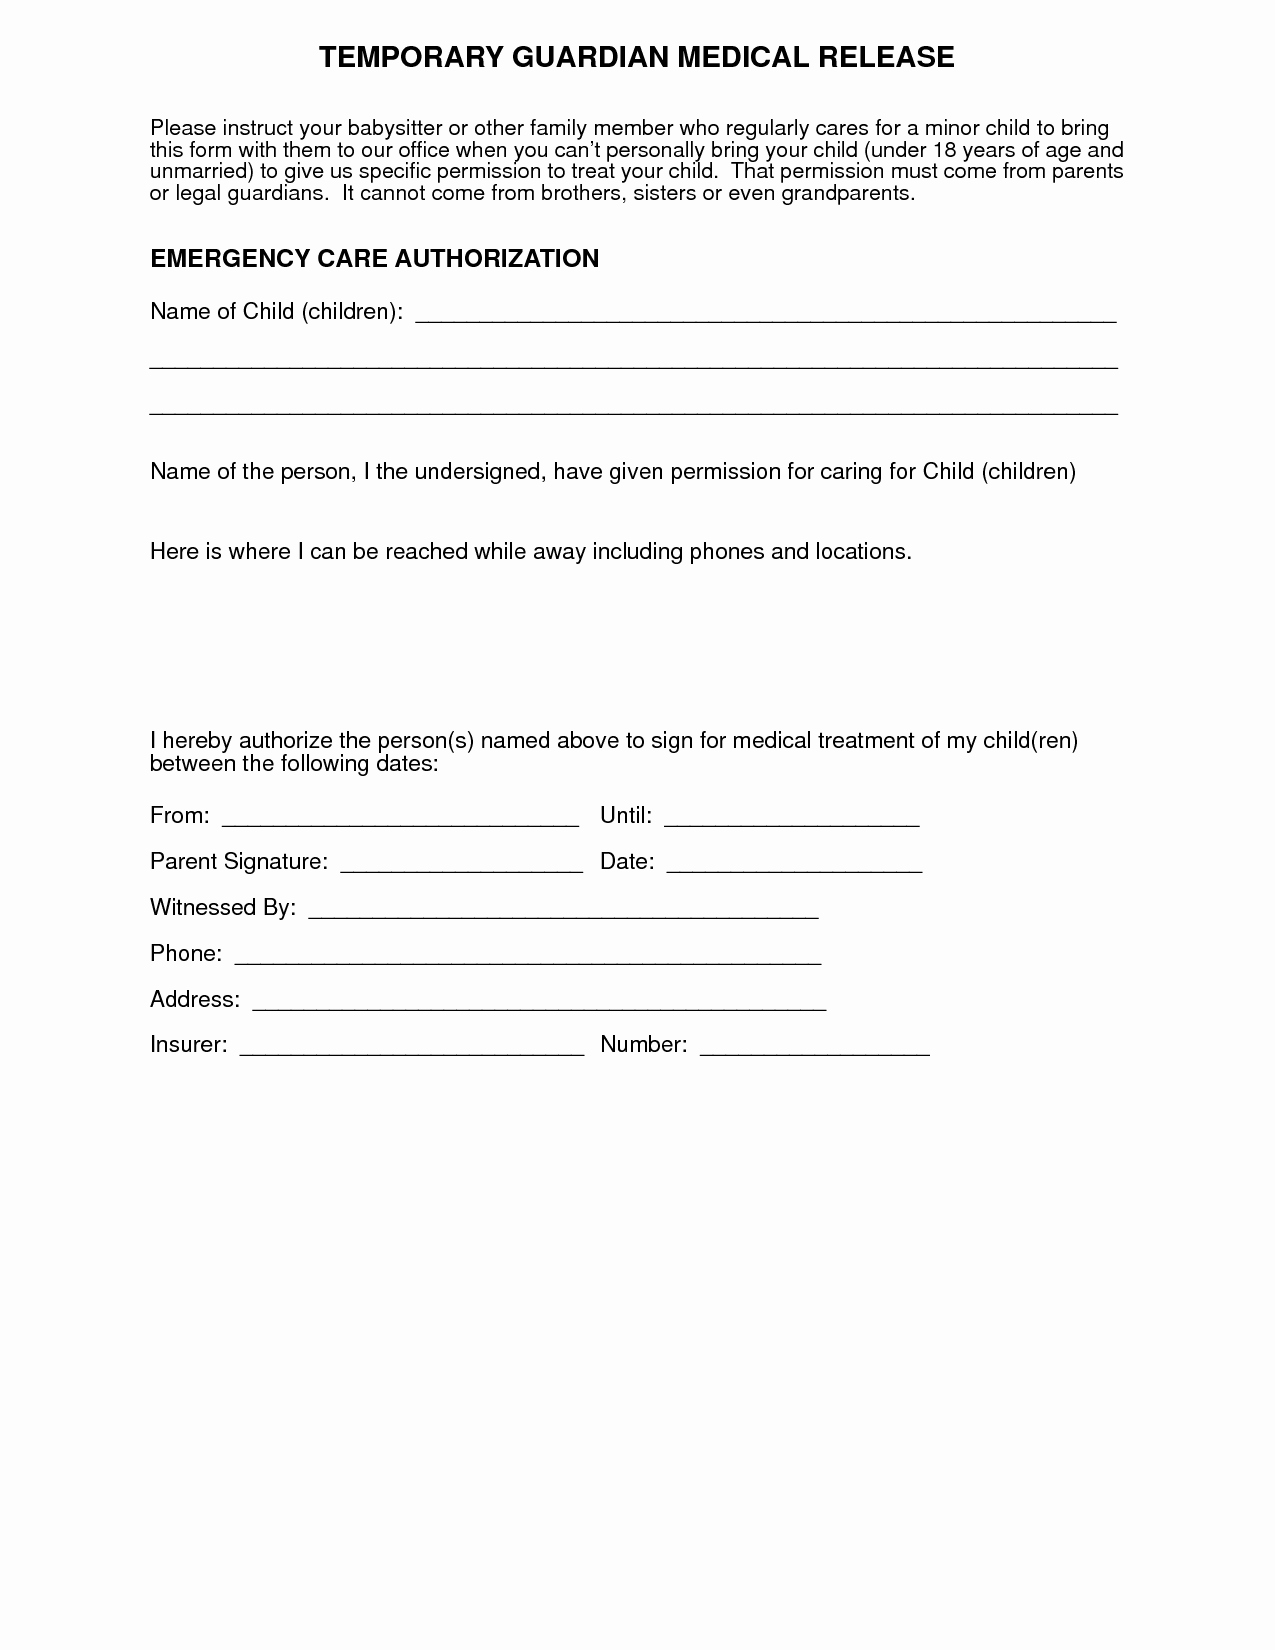 Letter Of Permission to Travel with Grandchildren Template Unique Medical Authorization form for Grandparents